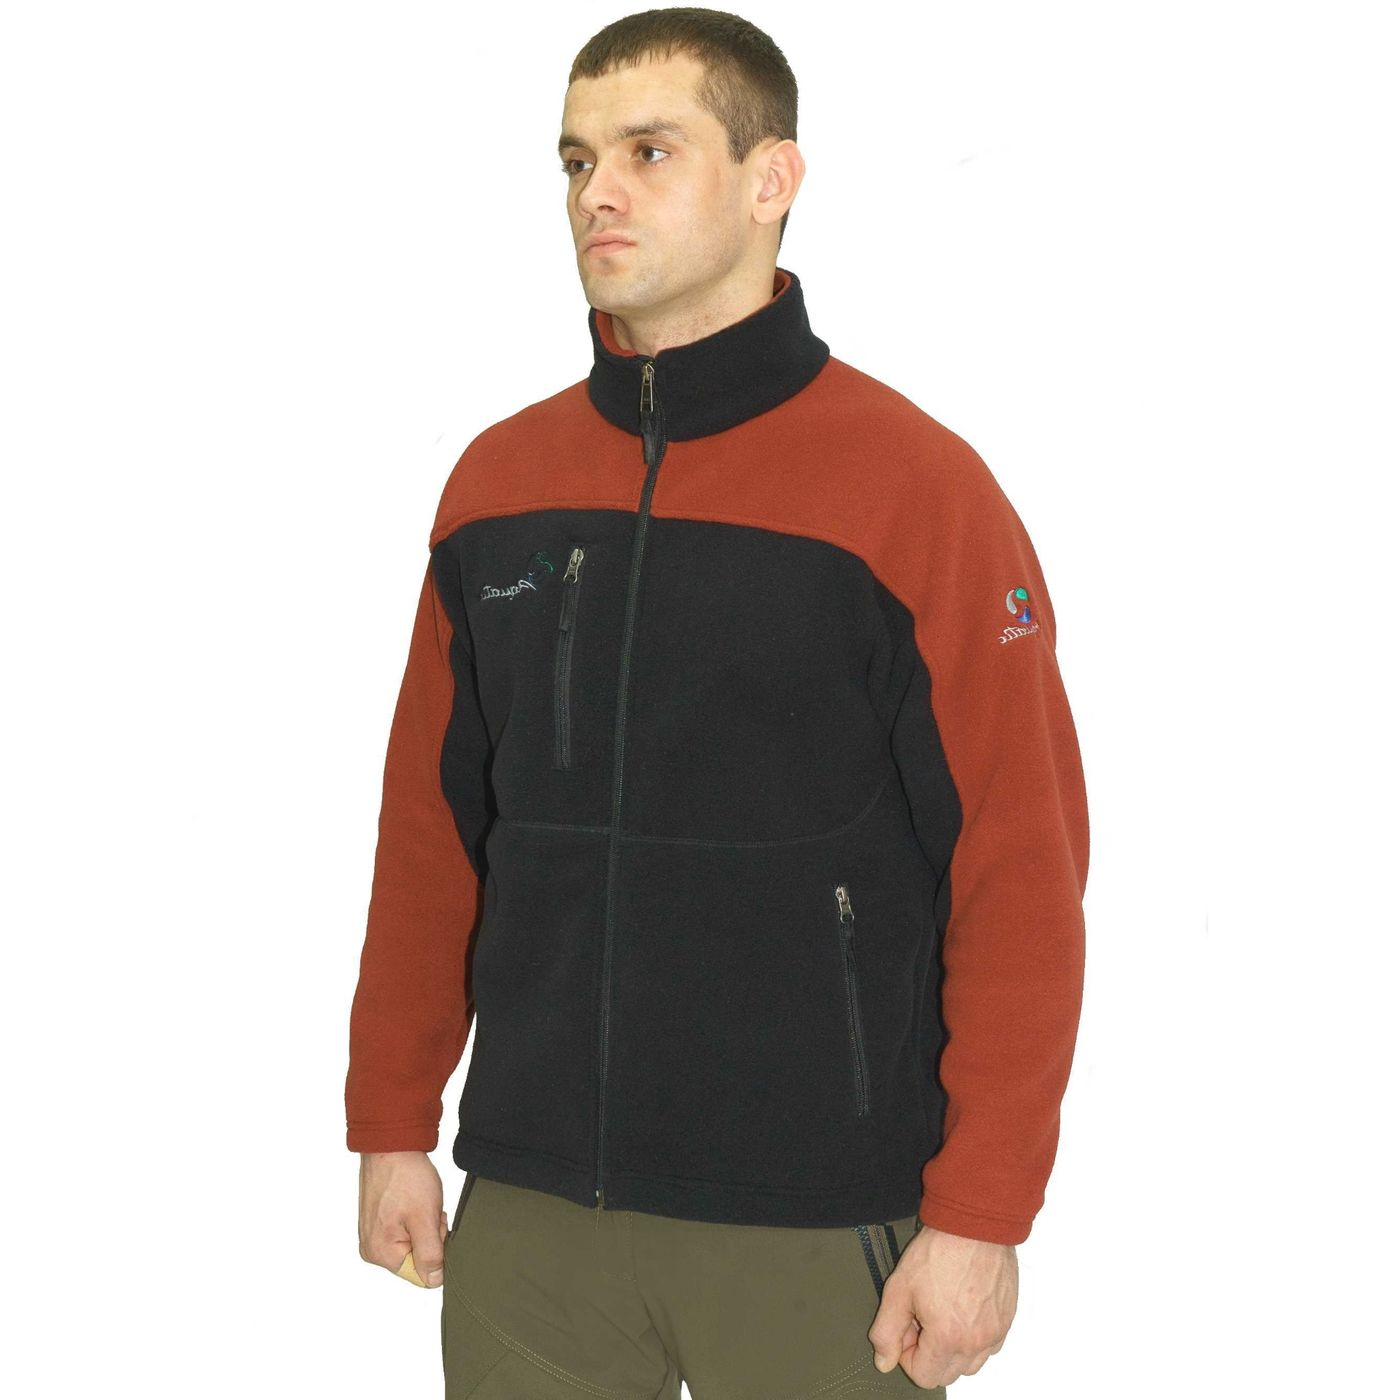 Fleece Jacket Aquatic Kf-03 Thu Kf-03 Thu 3XL